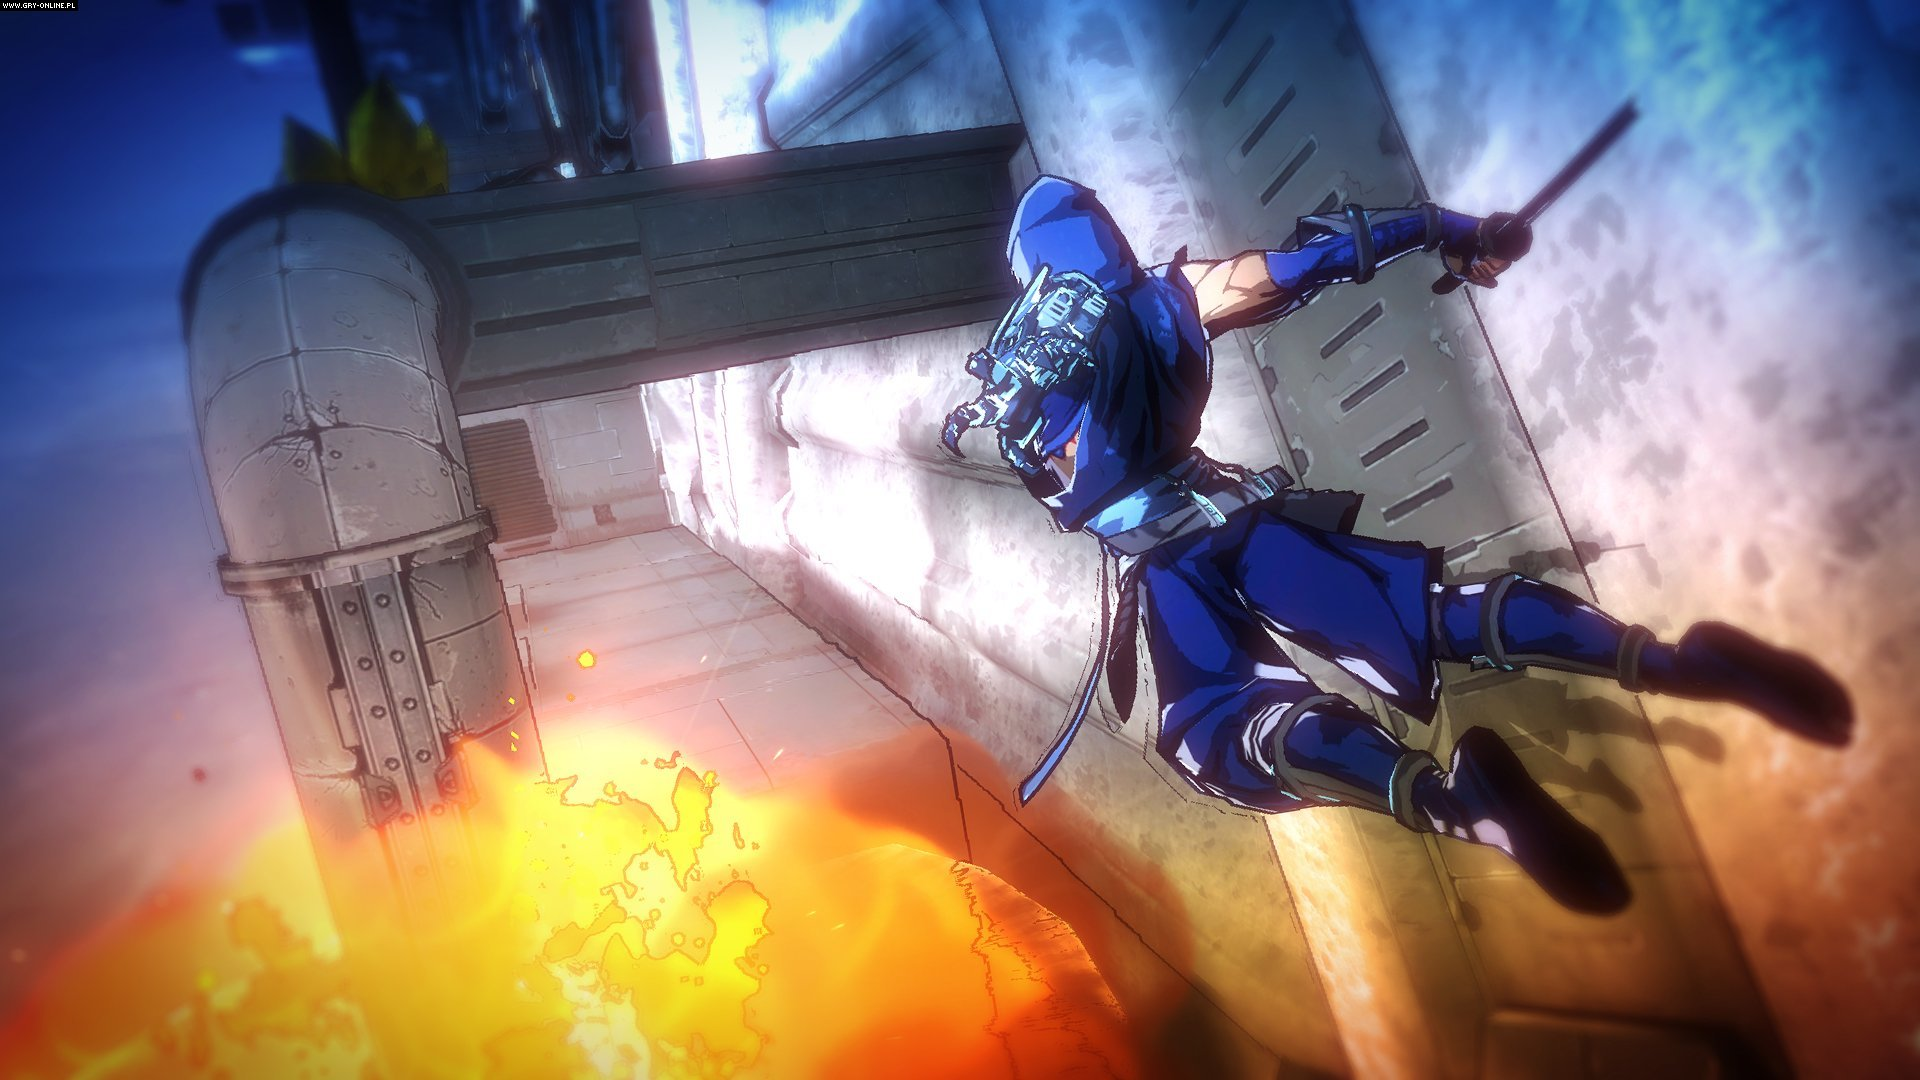 Yaiba: Ninja Gaiden Z PC Gry Screen 5/87, Comcept, Koei Tecmo